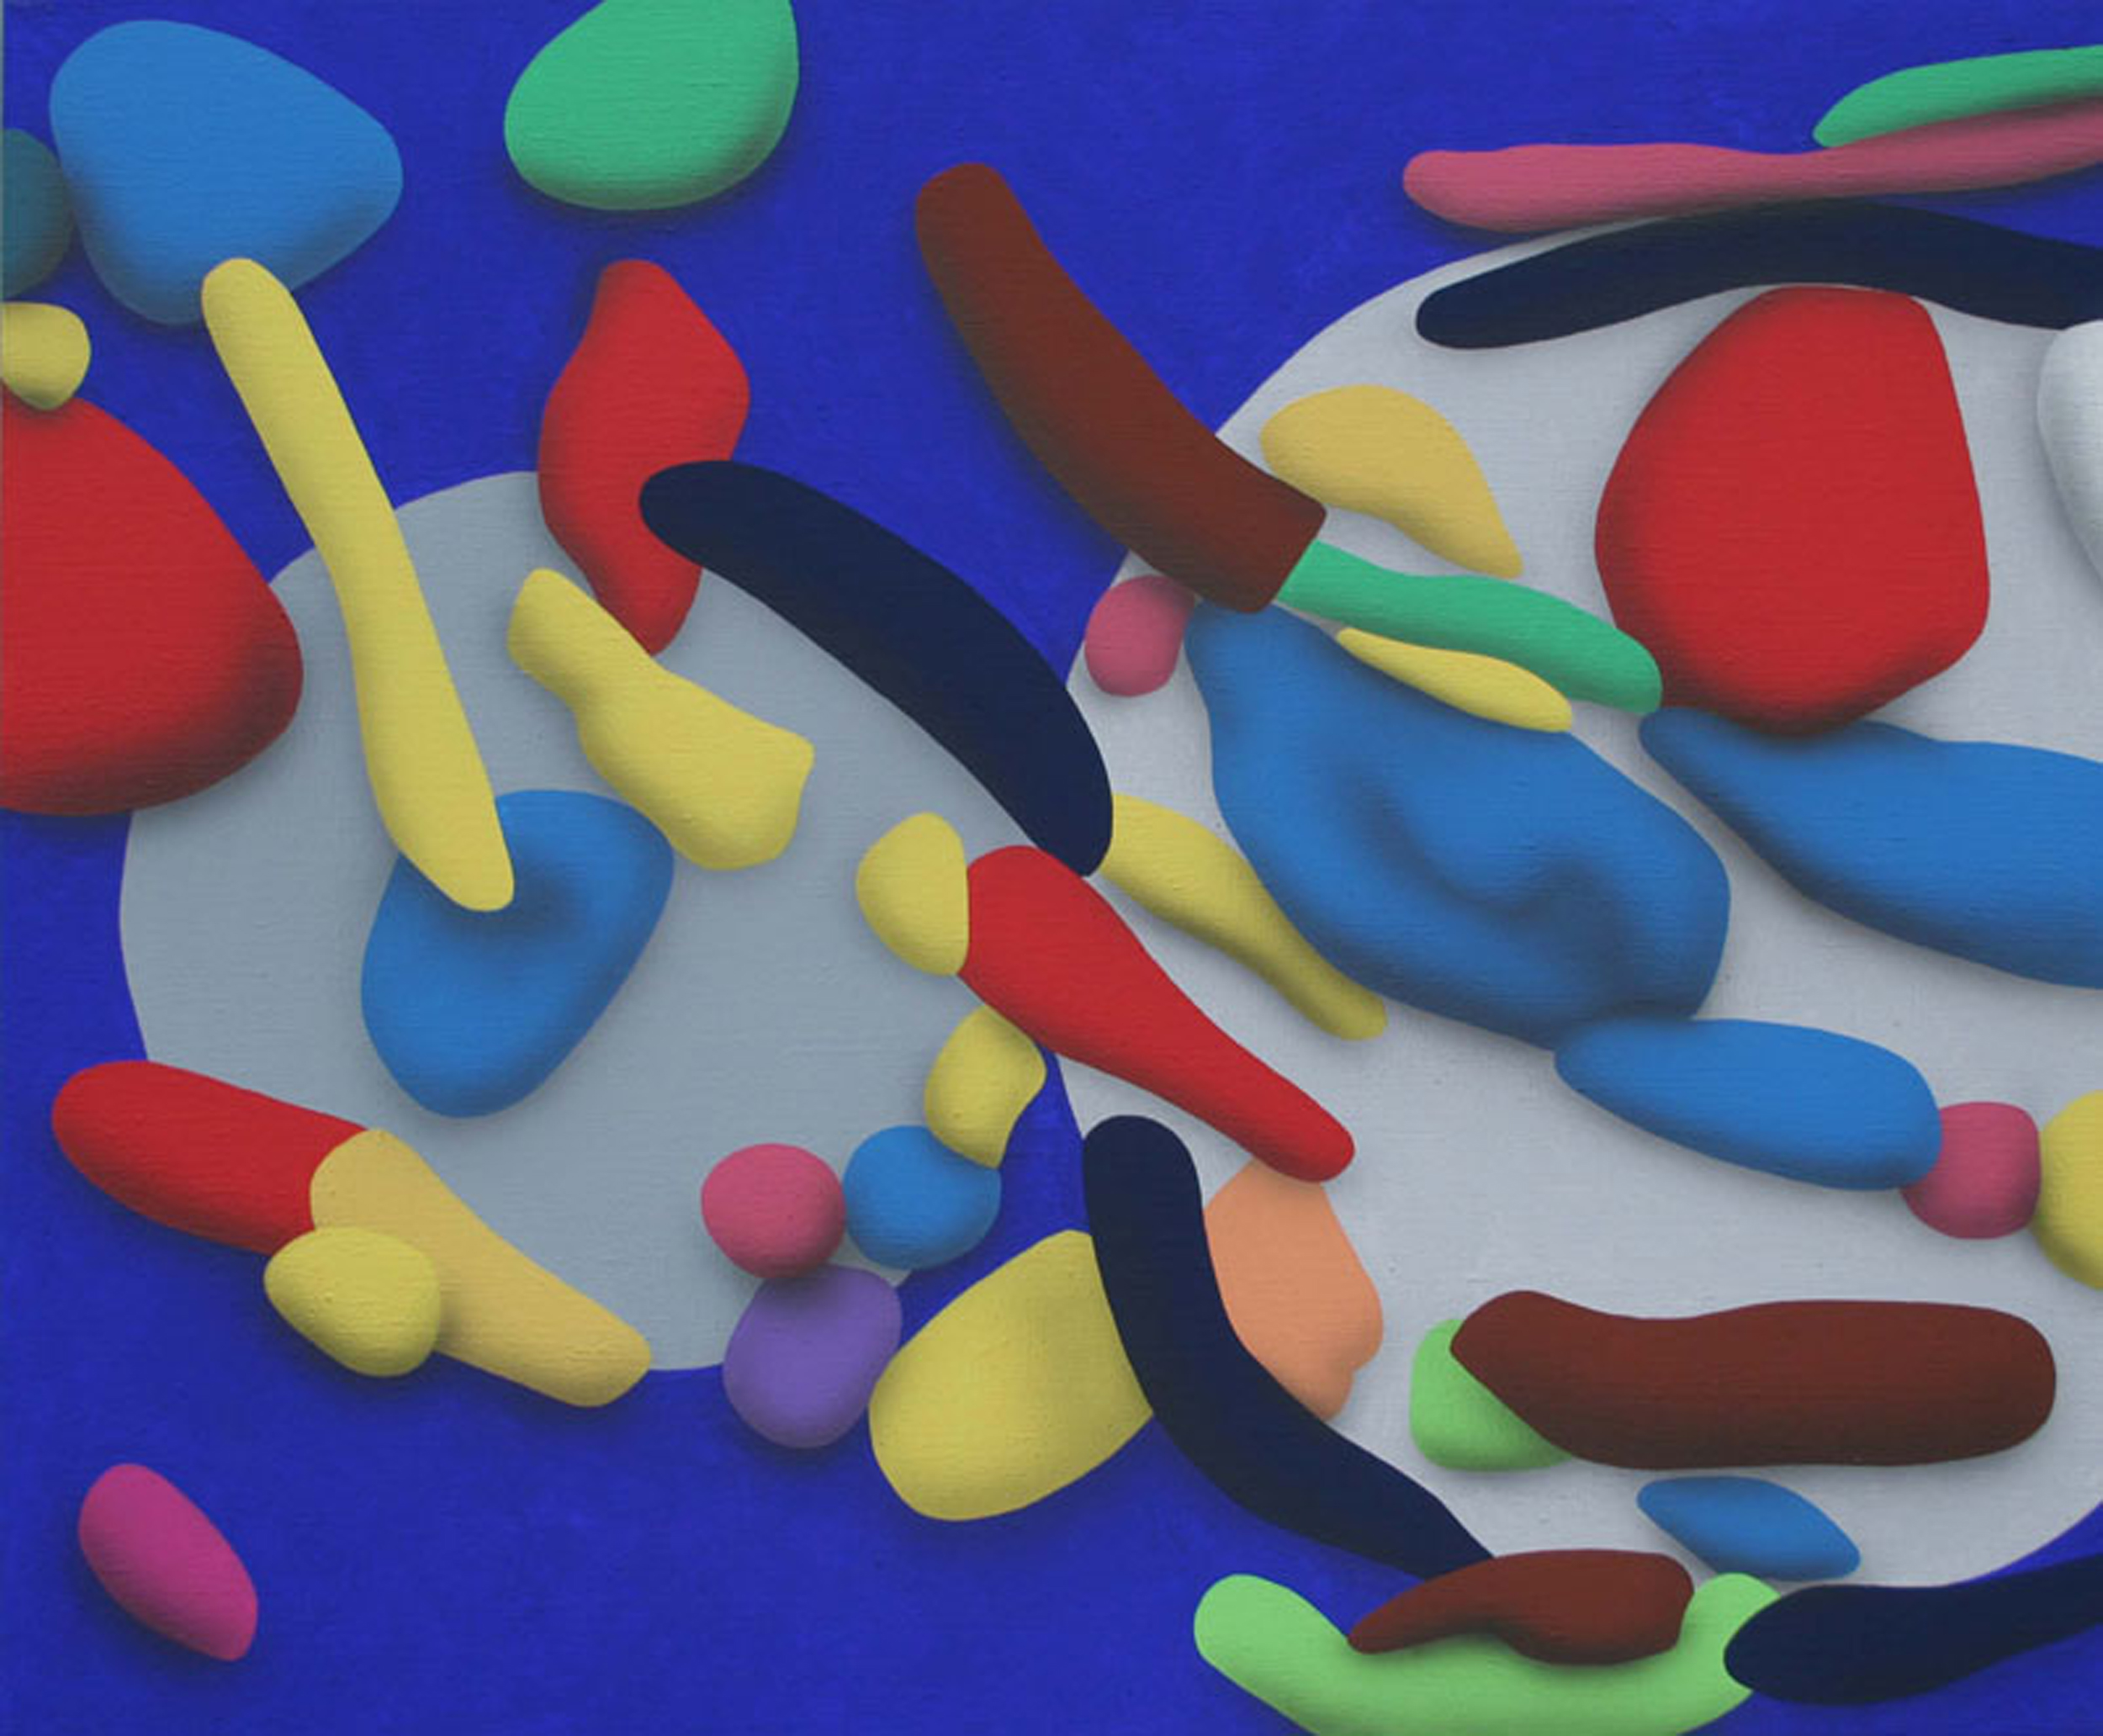 Touches Of Surface And Volume Forms V. 2010, acrylic on canvas, 70 x 85 cm